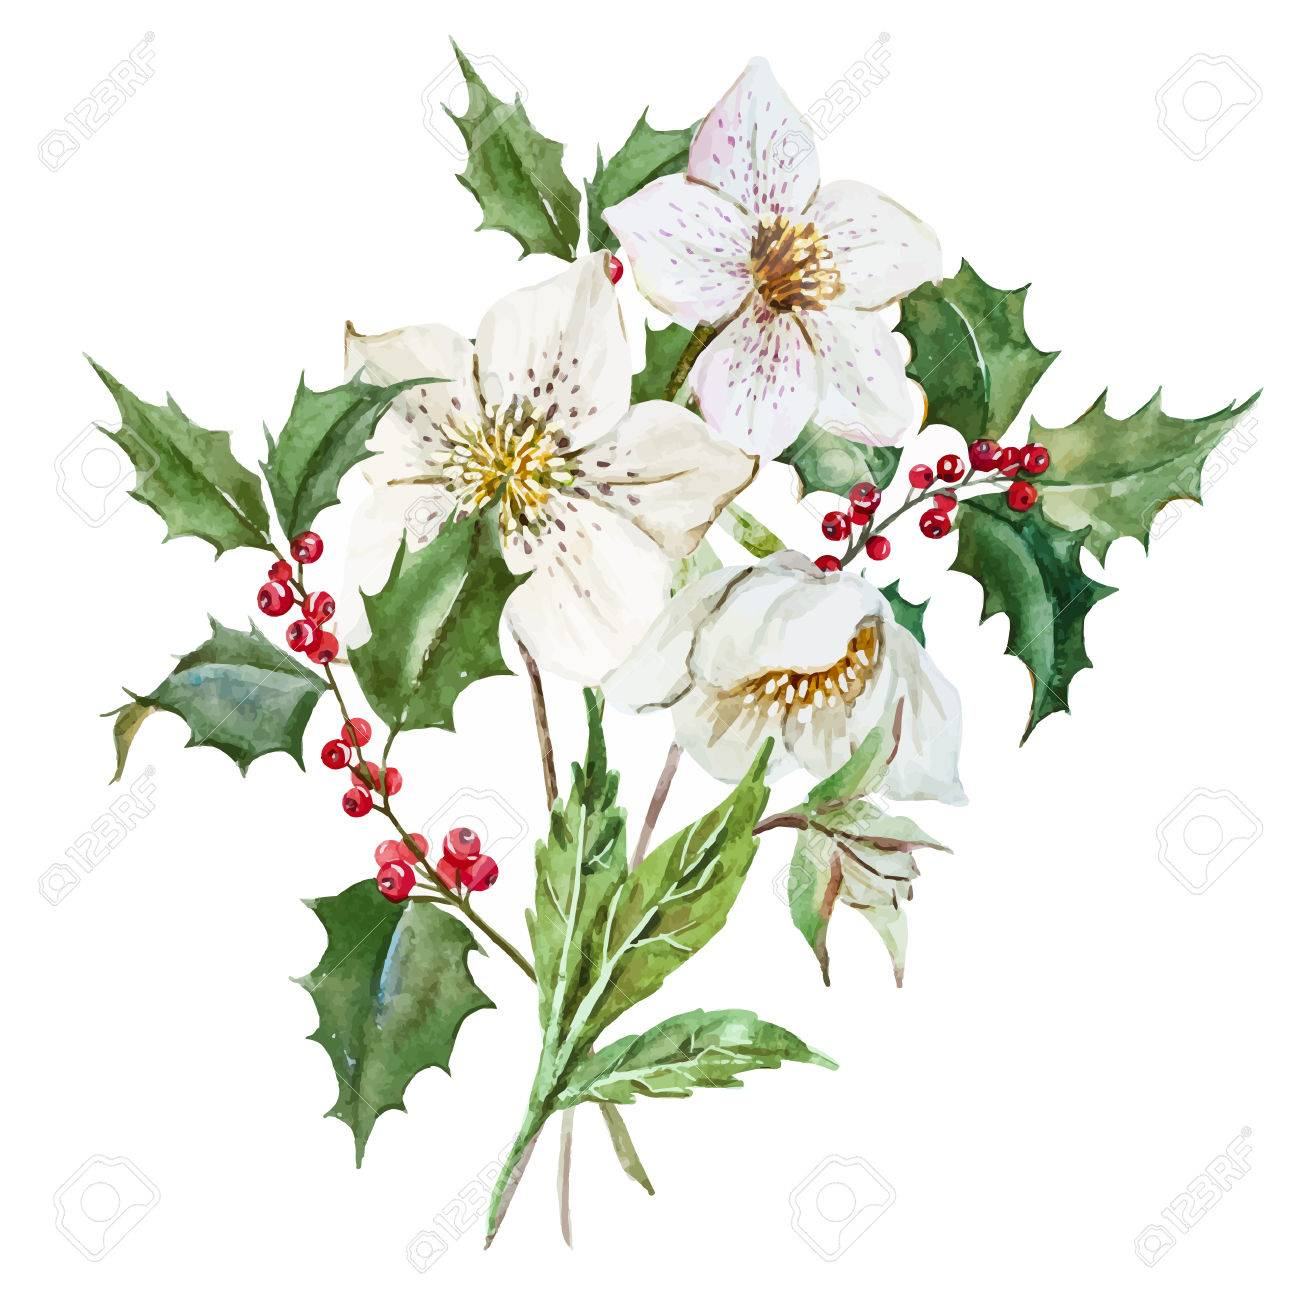 Christmas Flowers.Beautiful Image With Nice Watercolor Christmas Flowers